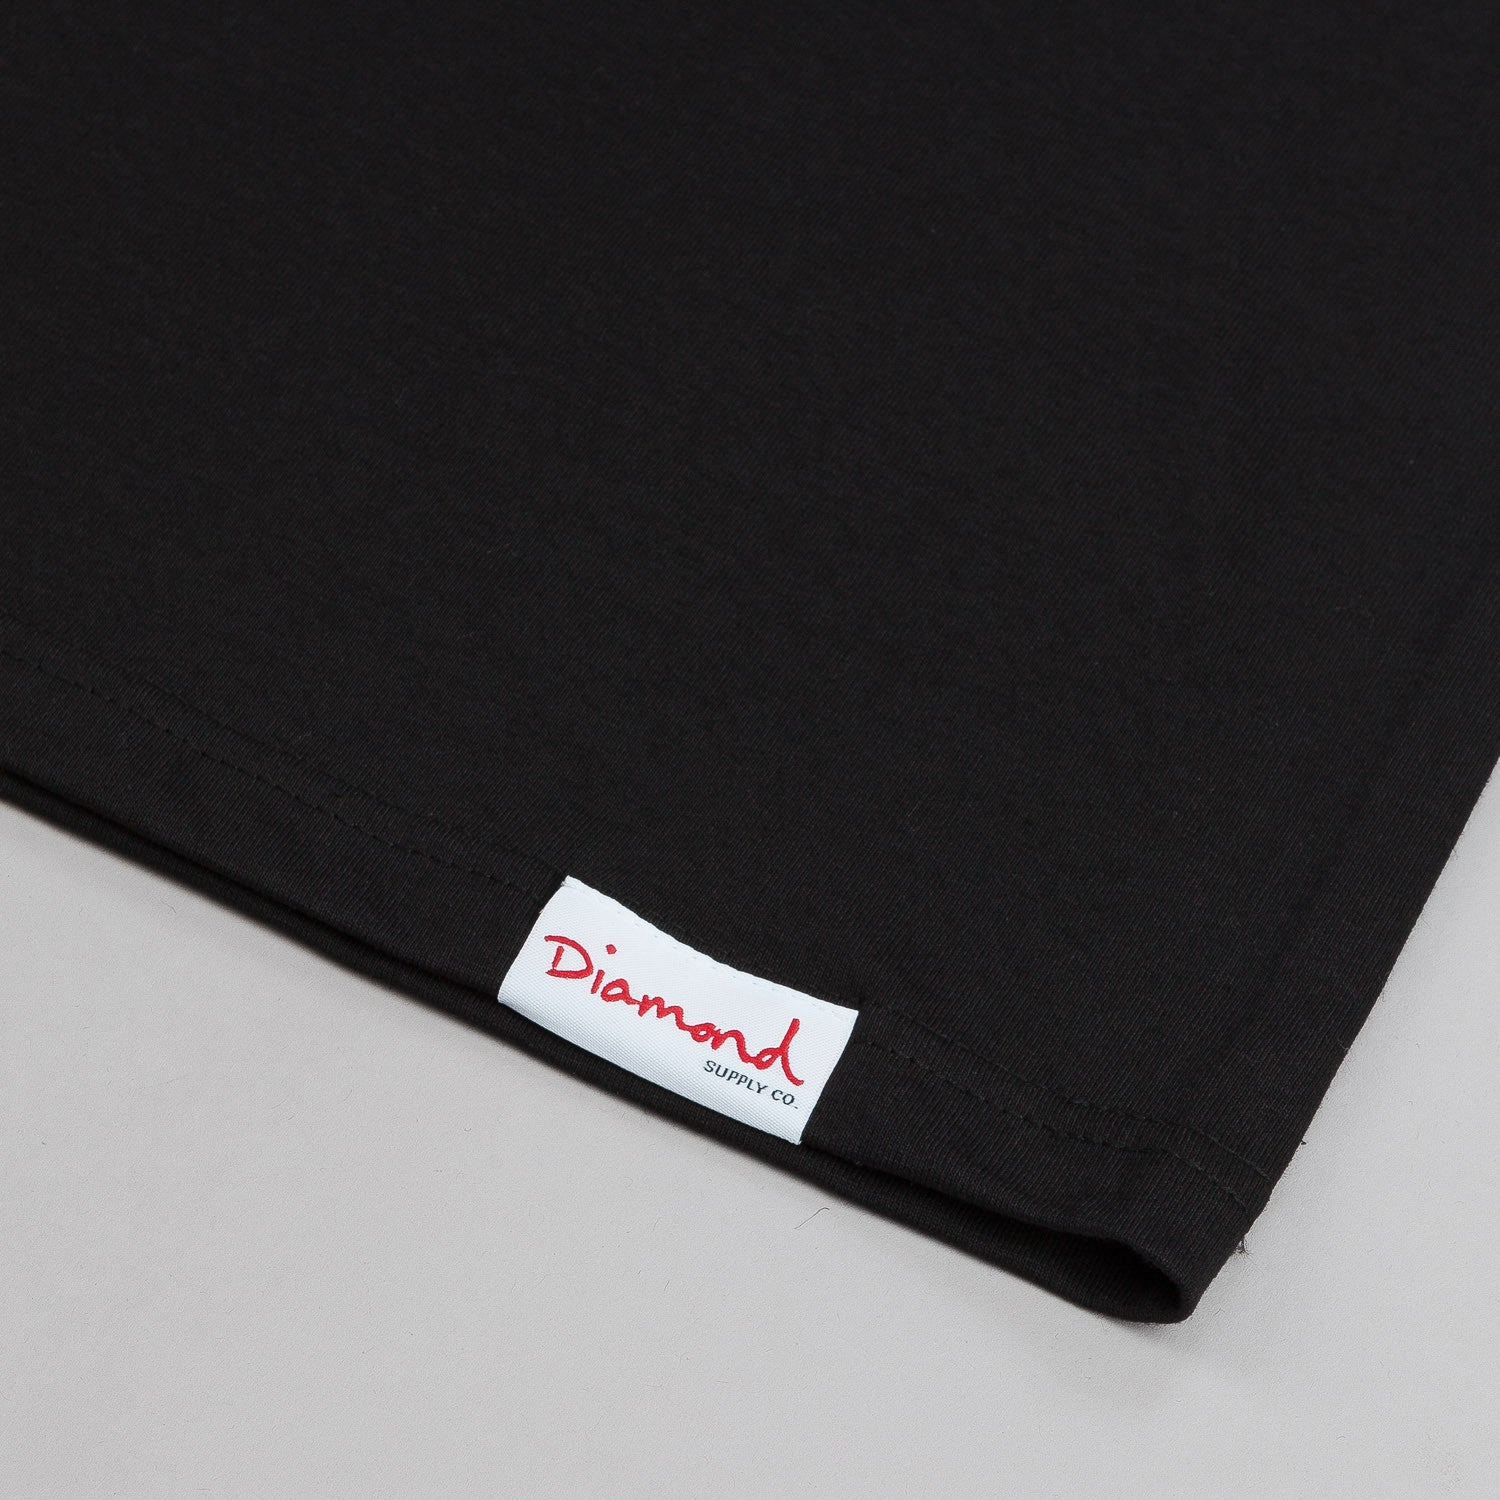 Diamond Un-Polo T-Shirt - Black